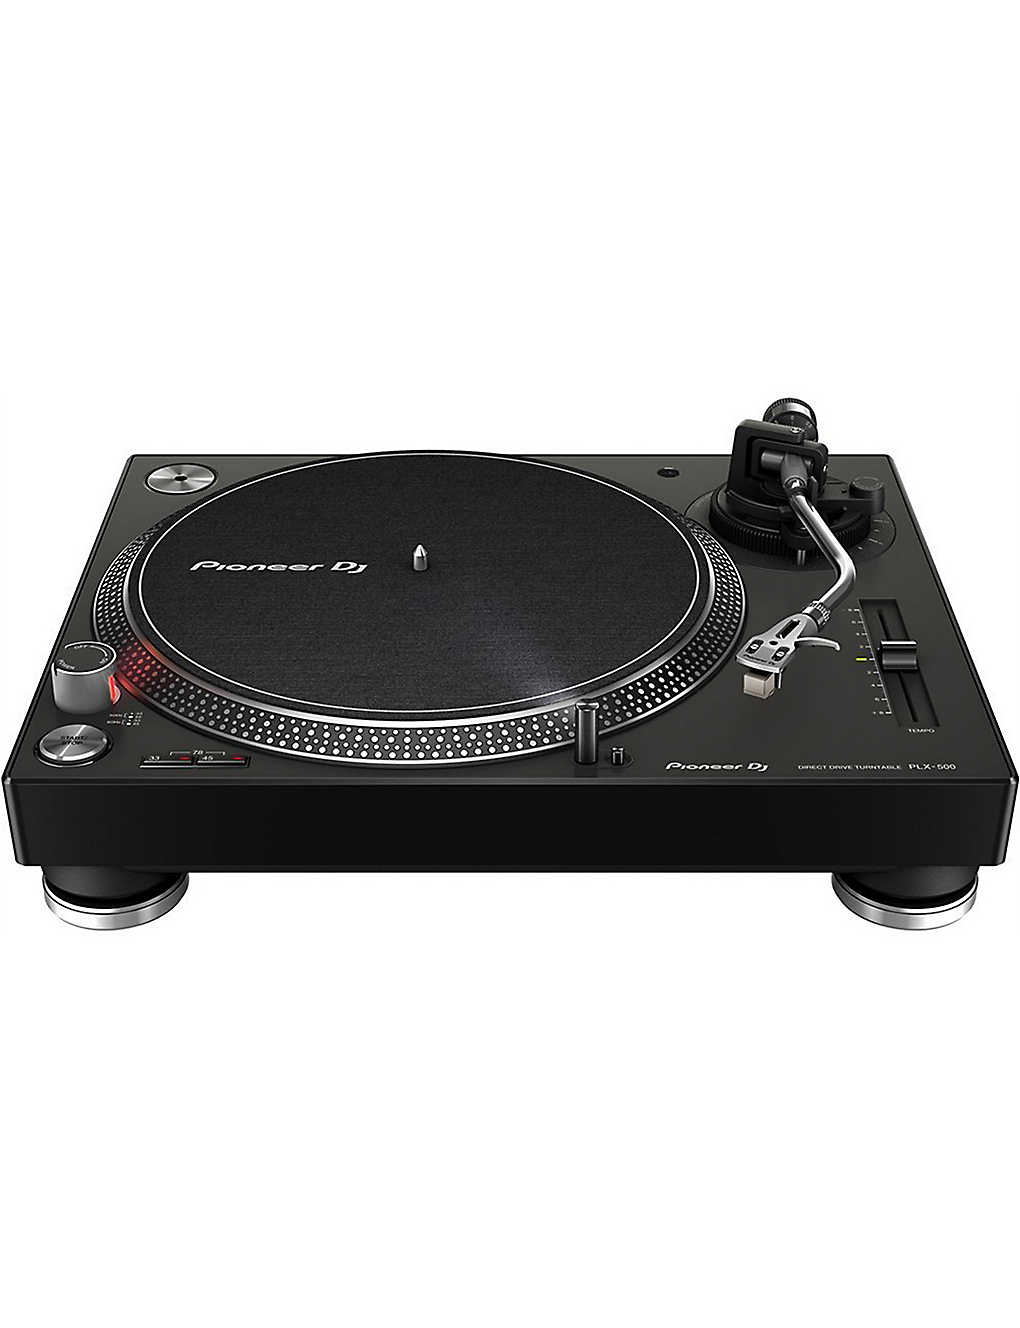 PIONEER: PLX-500 Turntable